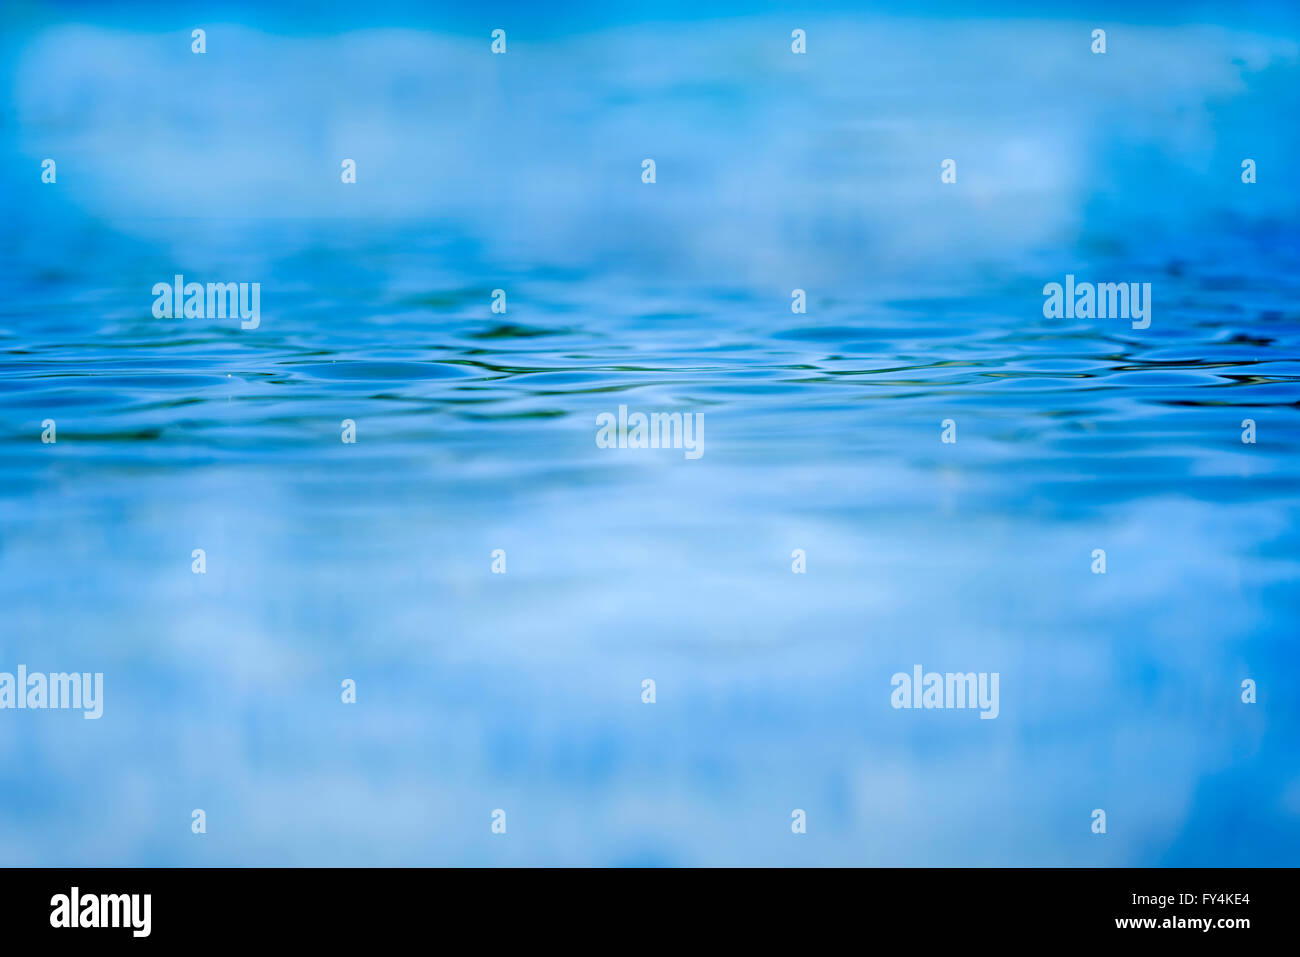 Shallow focus looking across blue water with ripples - Stock Image